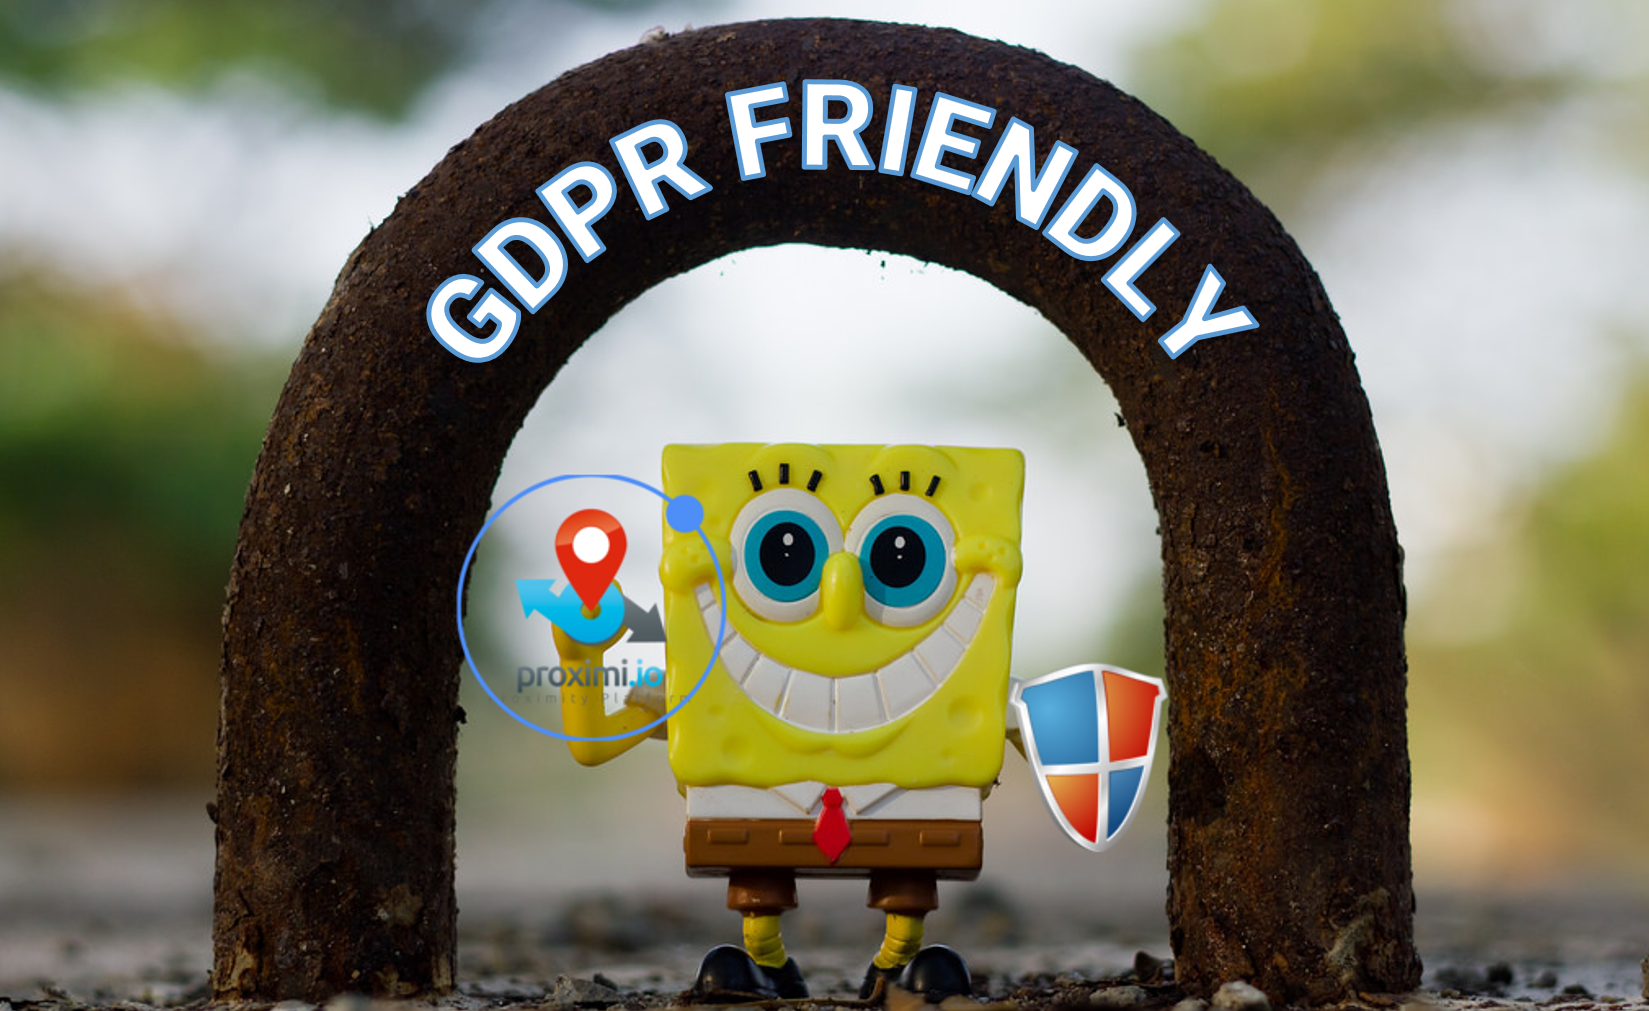 TRACKING LOCATION GDPR-FRIENDLY